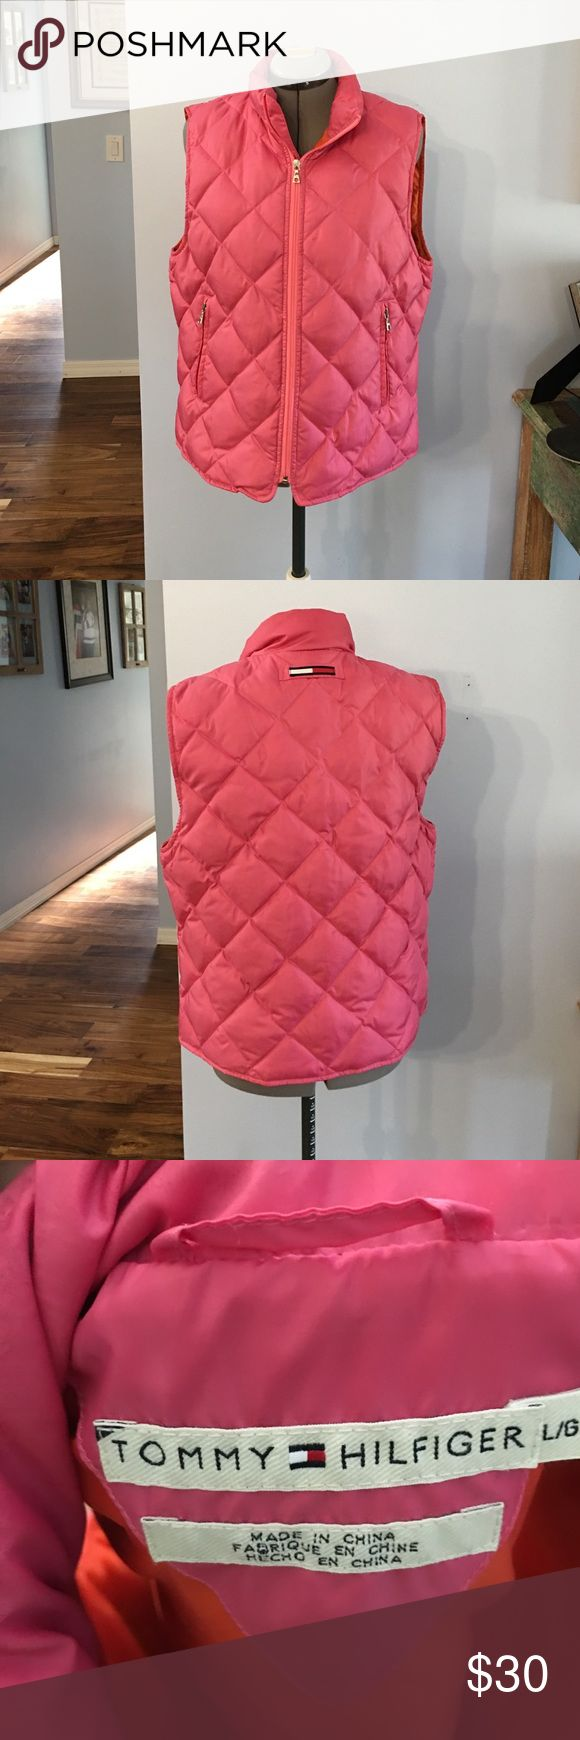 Tommy Hilfiger puffer vest Great condition no tears or stains Tommy Hilfiger Tops